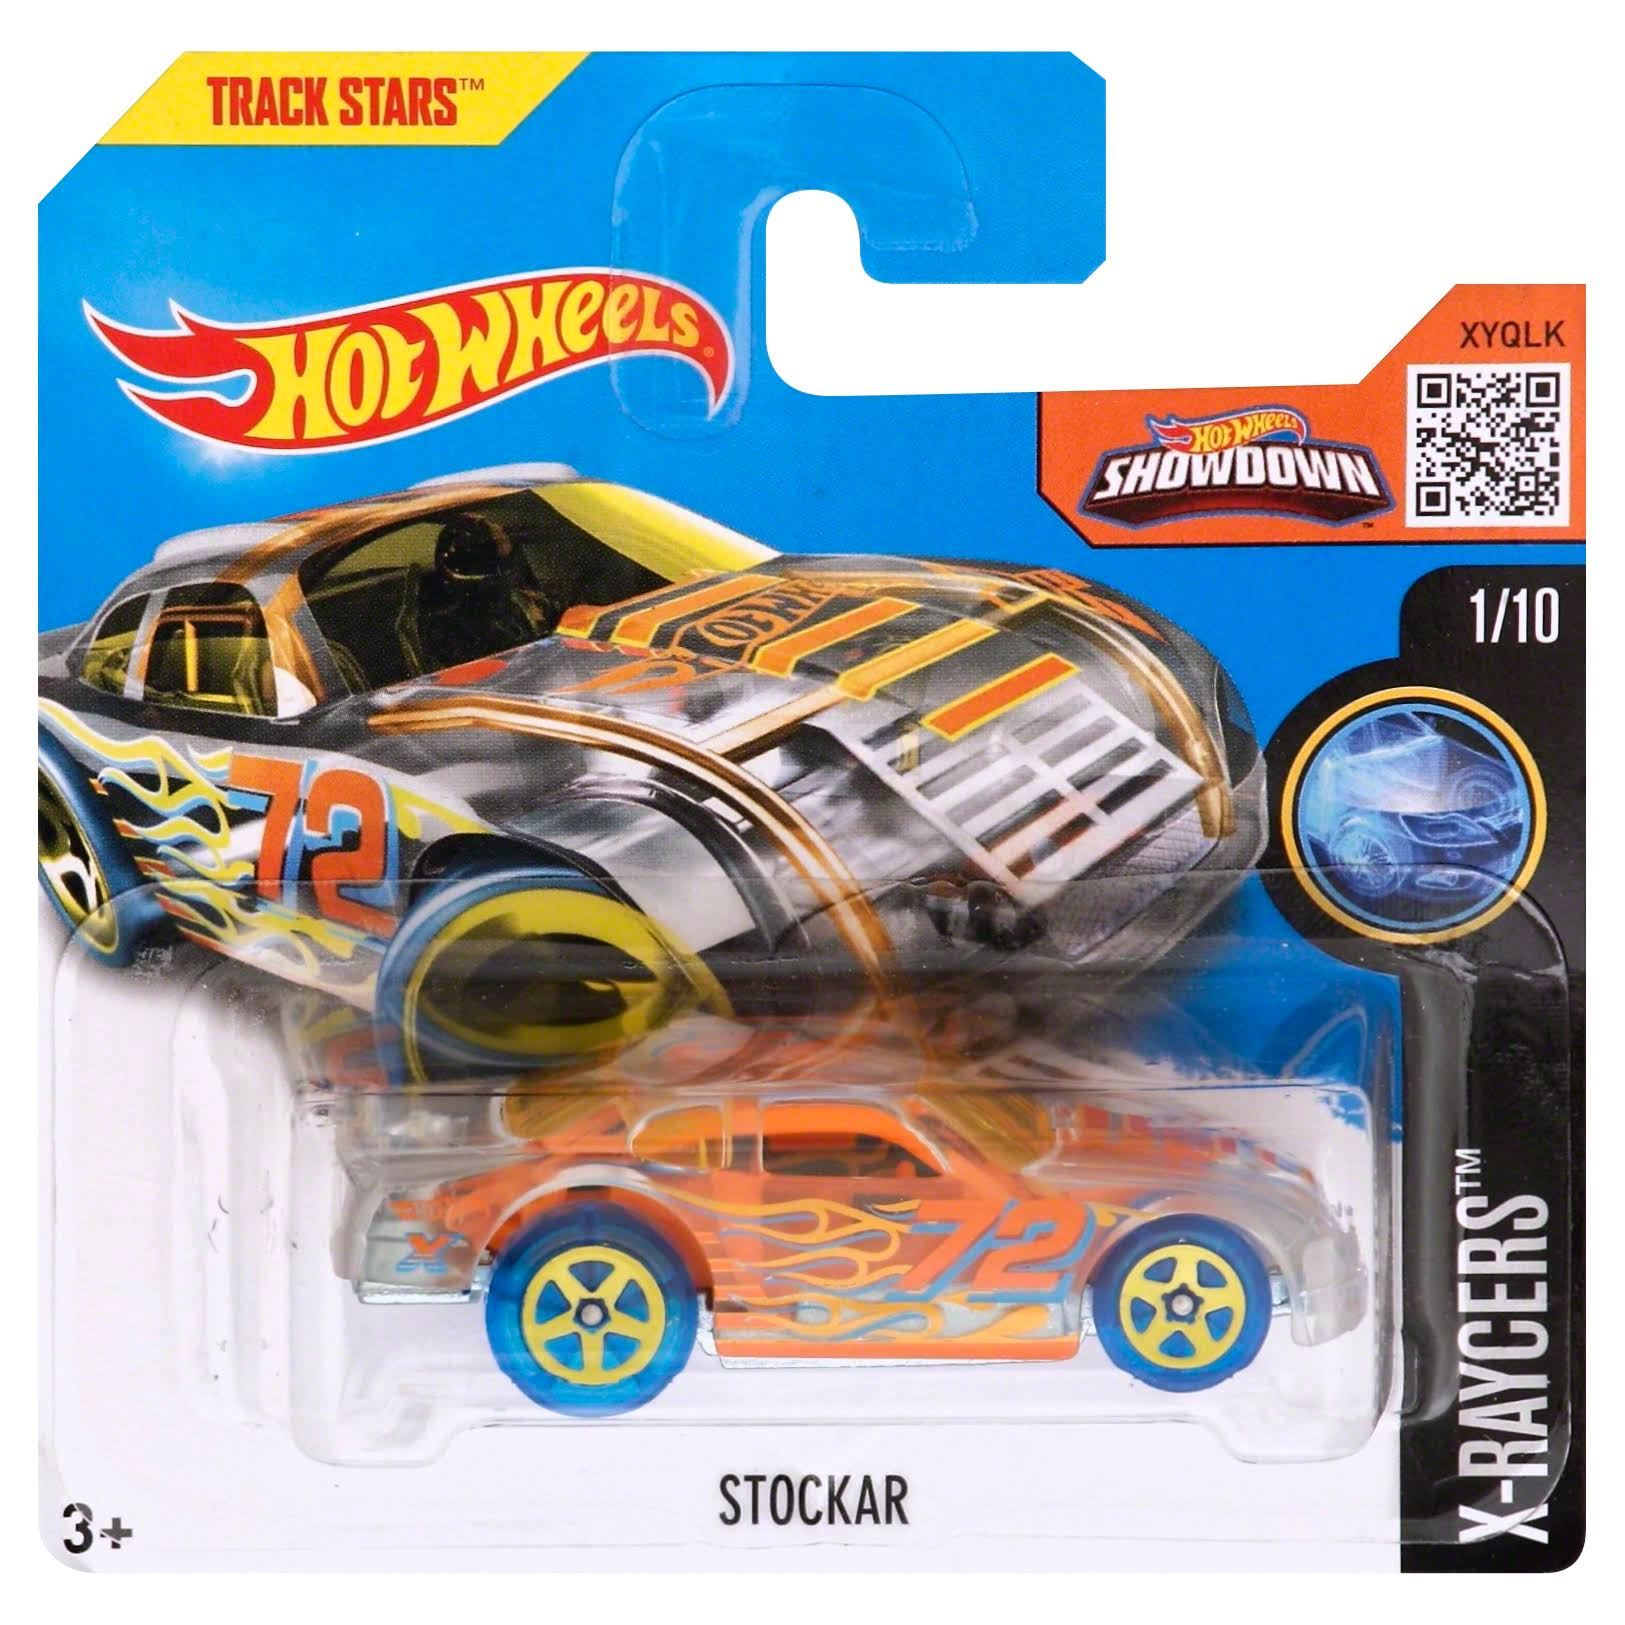 Hot Wheels 70 Pro Stock Camaro Car Toy - 1:10 Scale